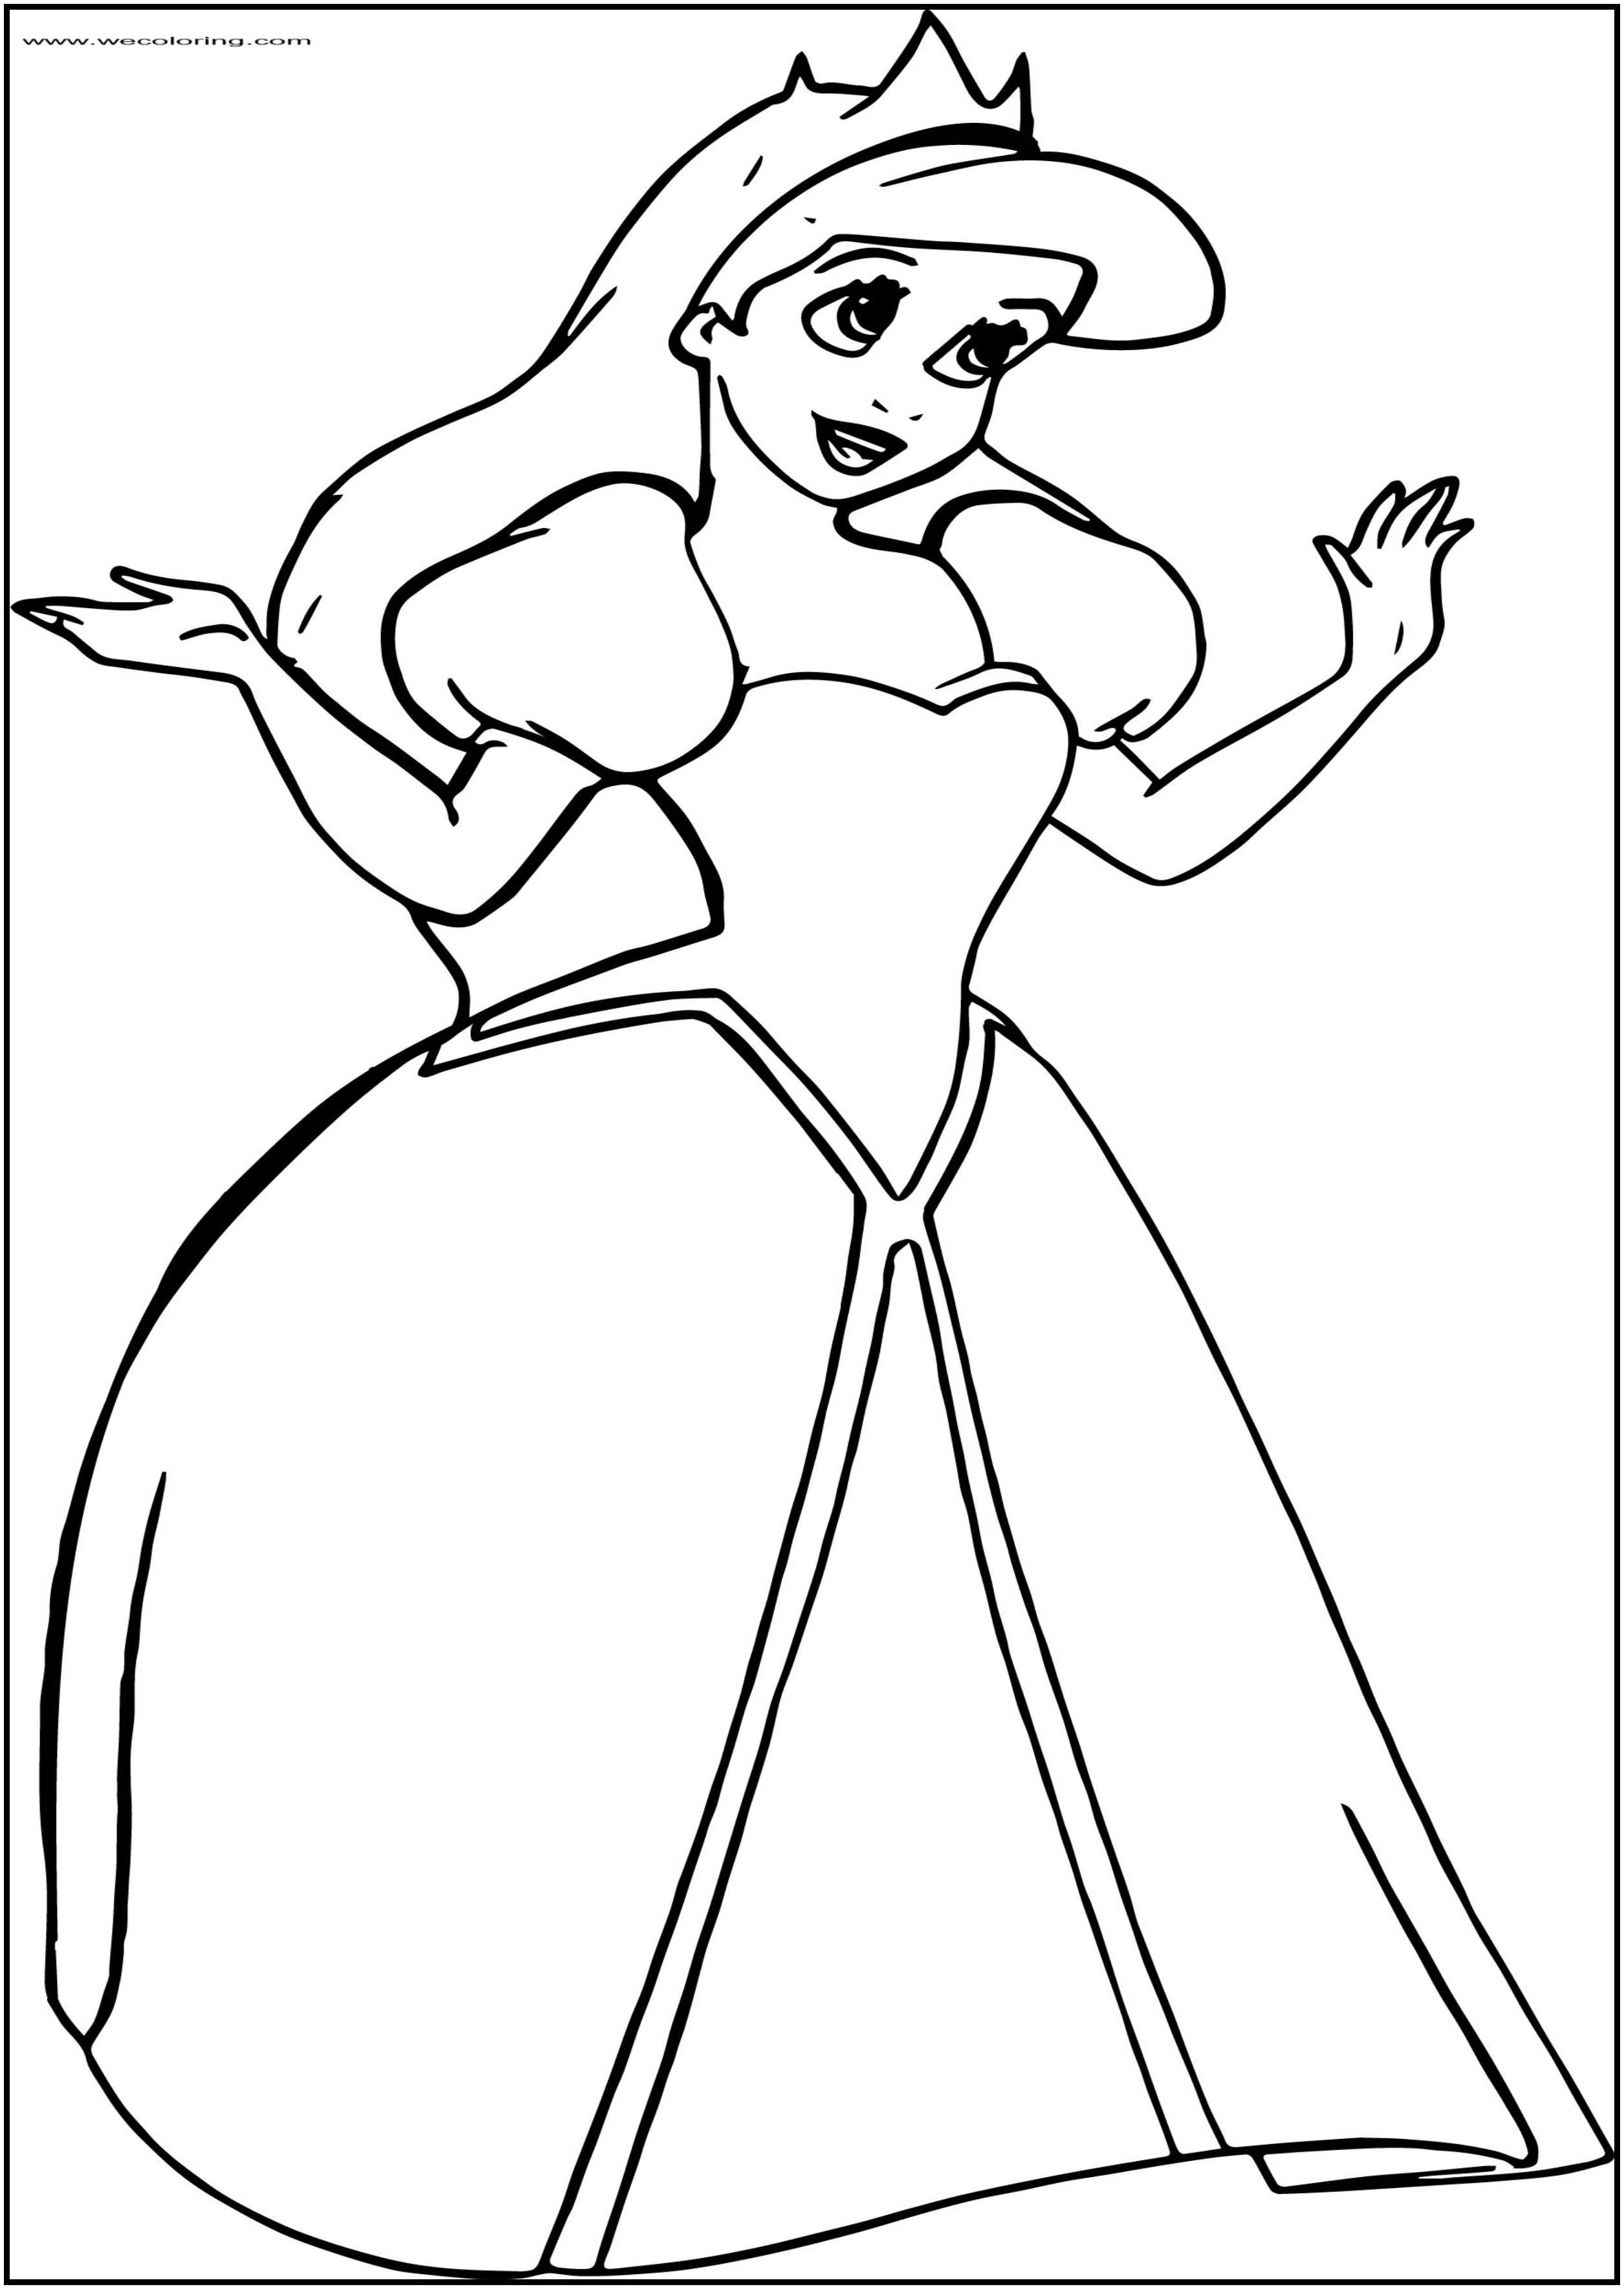 Wedding Princess Ariel Free Printable Coloring Page